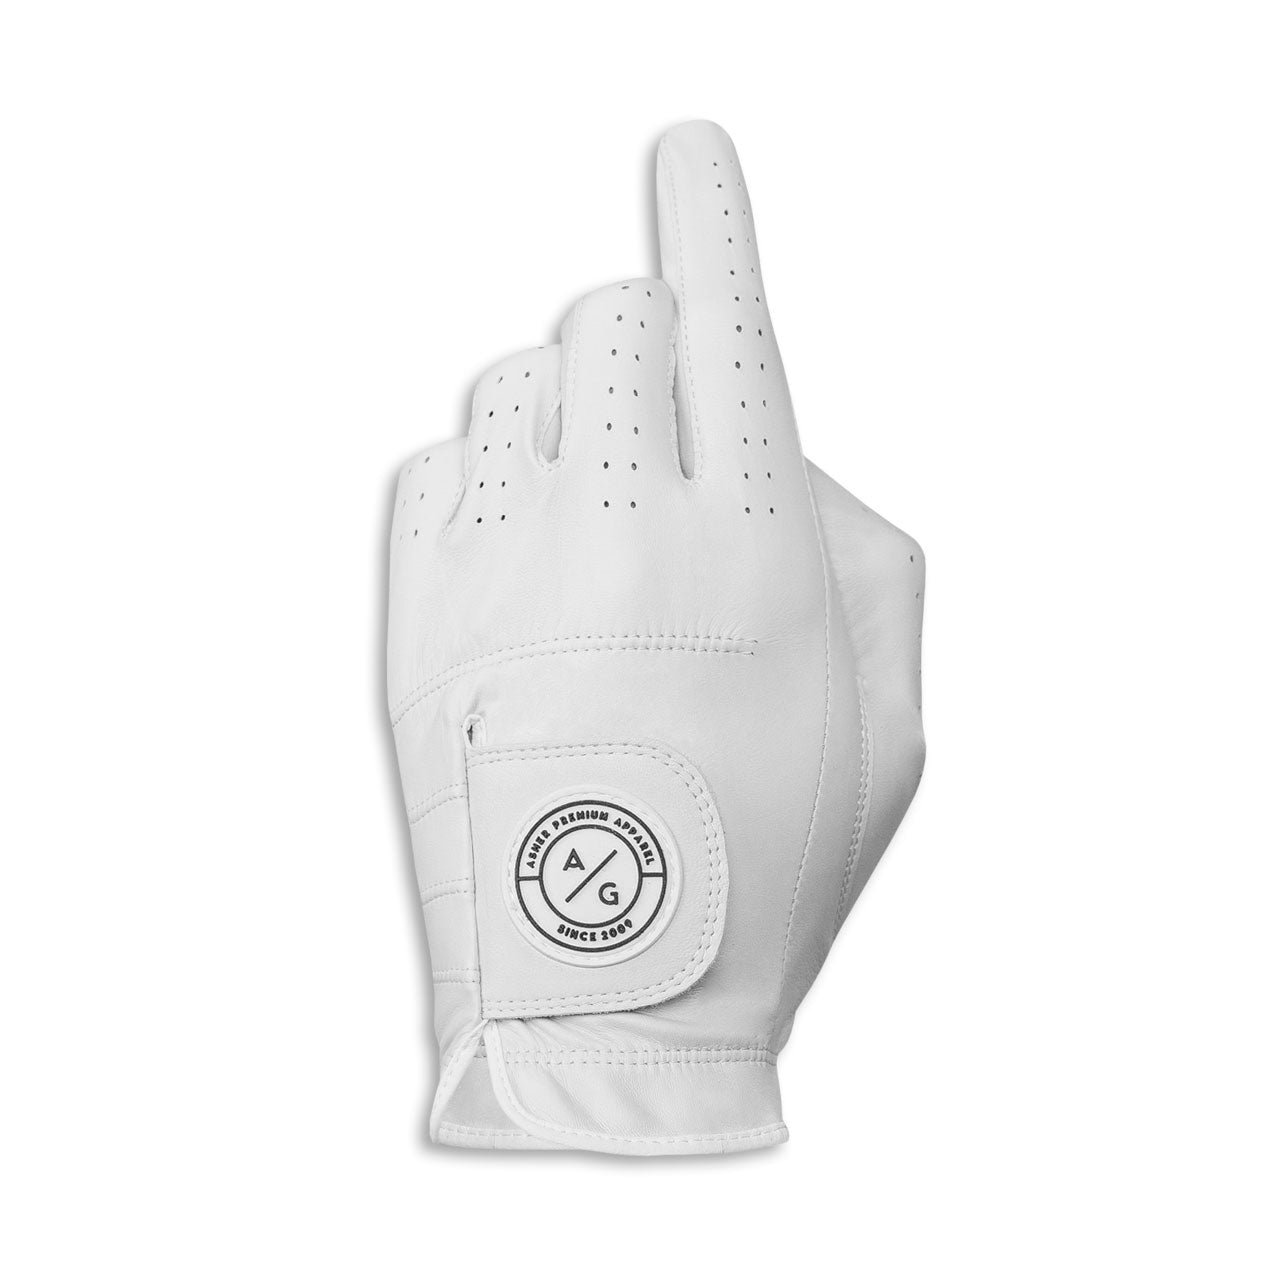 Asher Yeti Golf Glove